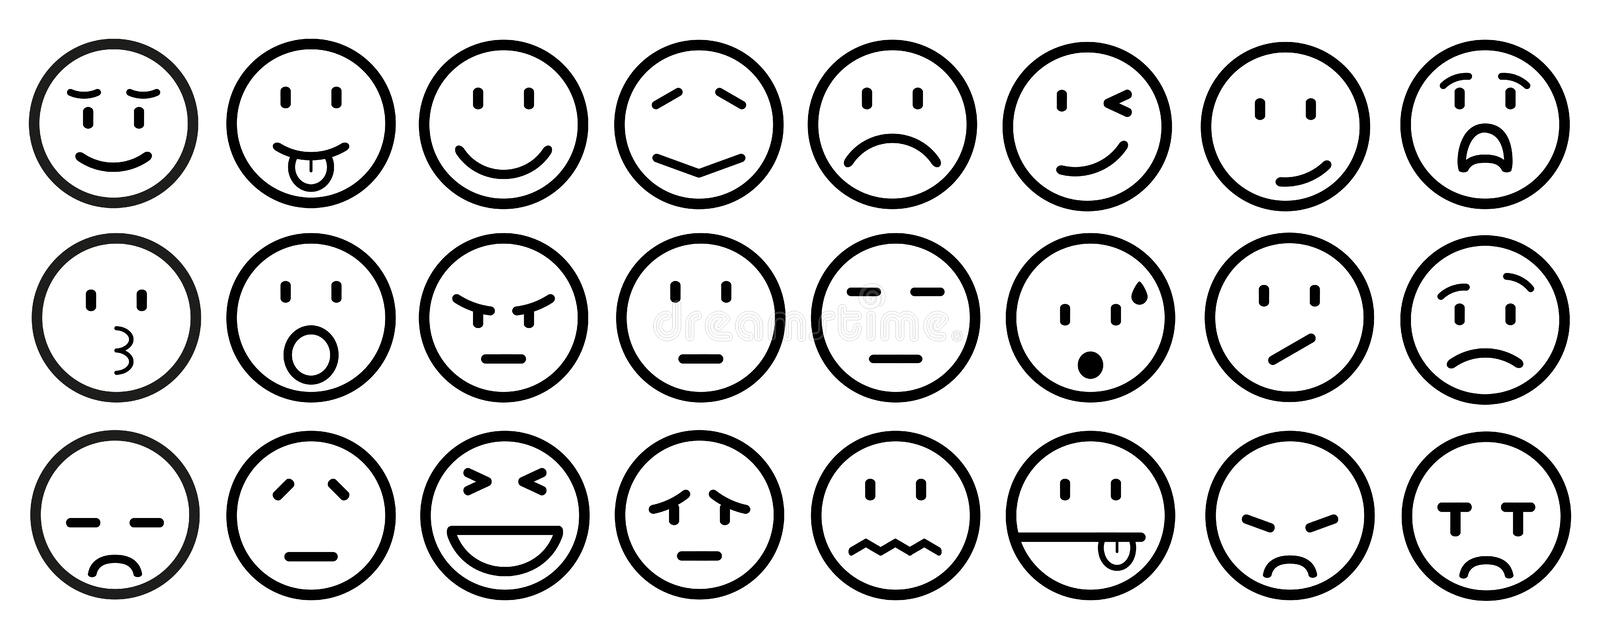 Twenty four smilies, set smiley emotion, by smilies, cartoon emoticons - vector royalty free illustration